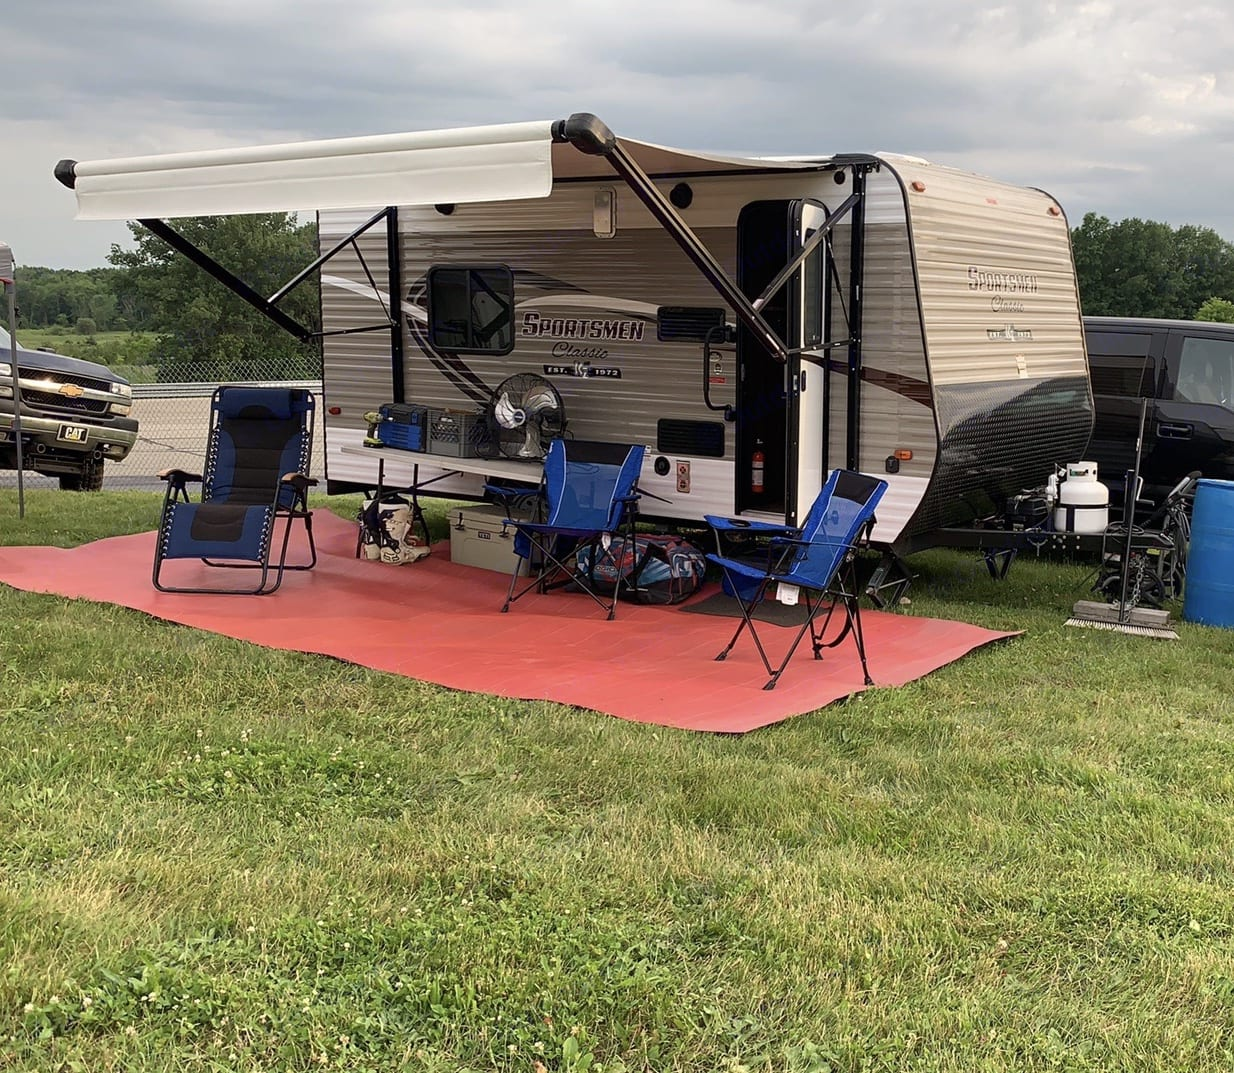 Set up for a weekend of motocross racing.. K-Z Manufacturing Sportsman Classic 2018